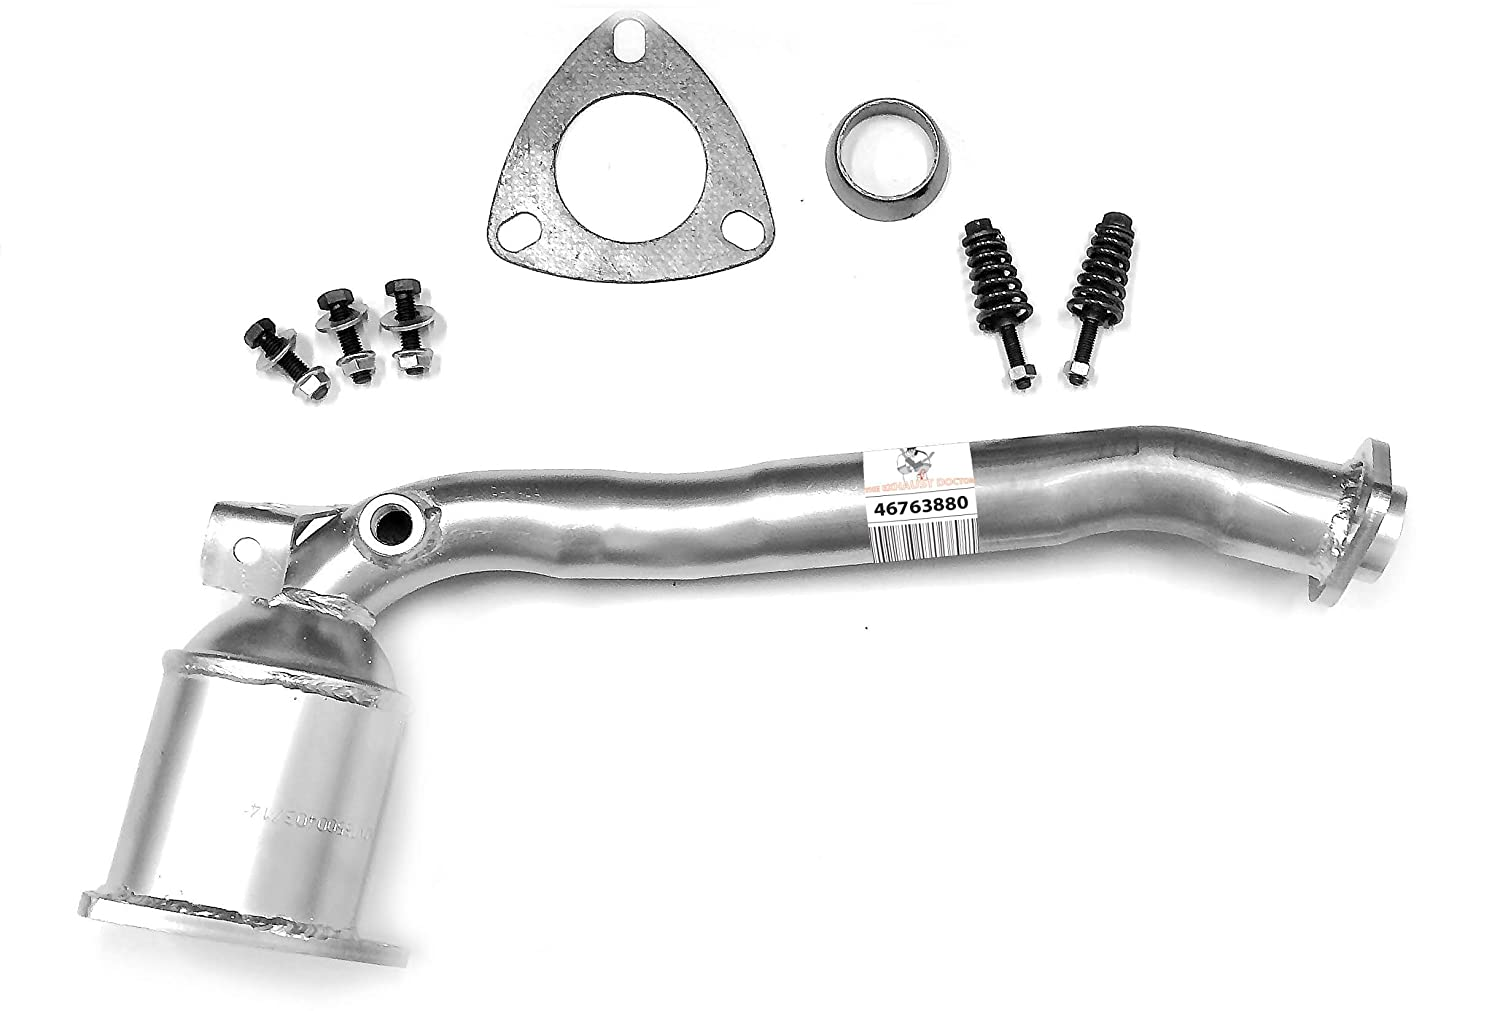 TED Direct-Fit Catalytic Converter Fits: 2004-2007 Suzuki Aerio/SX4 2.3L FRONT TEDR Catalytic Converters